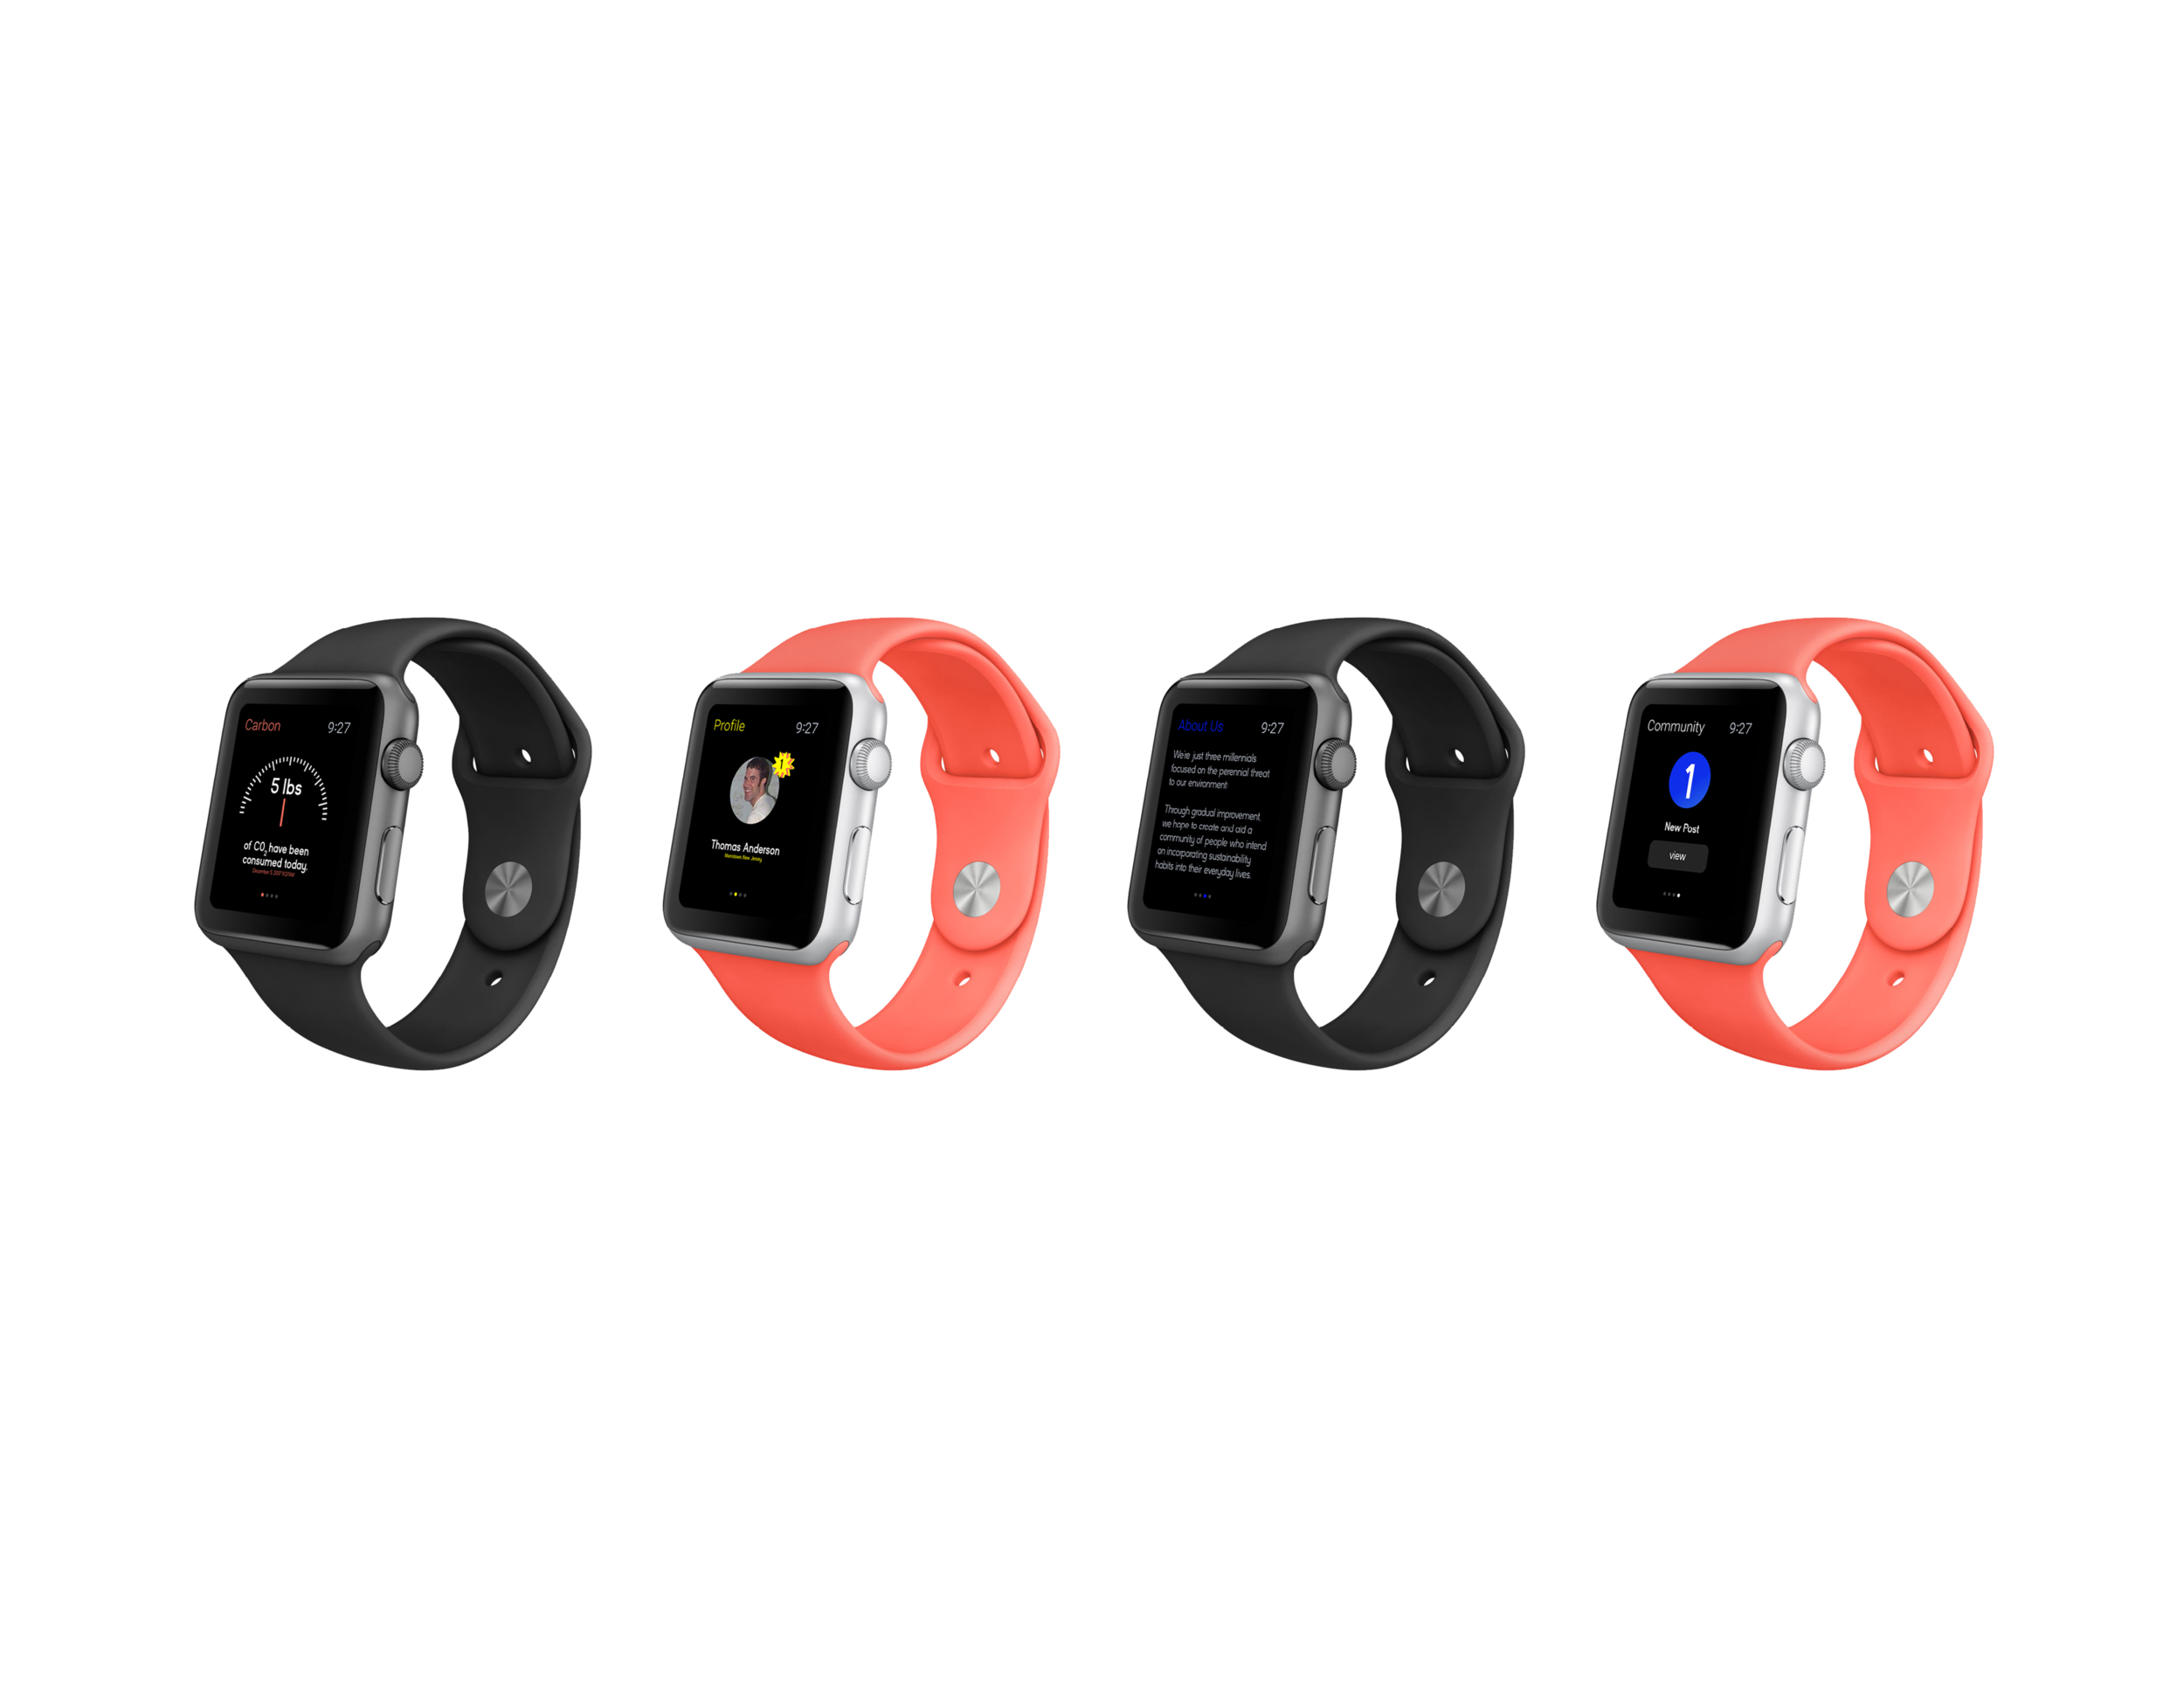 Apple watch compatability